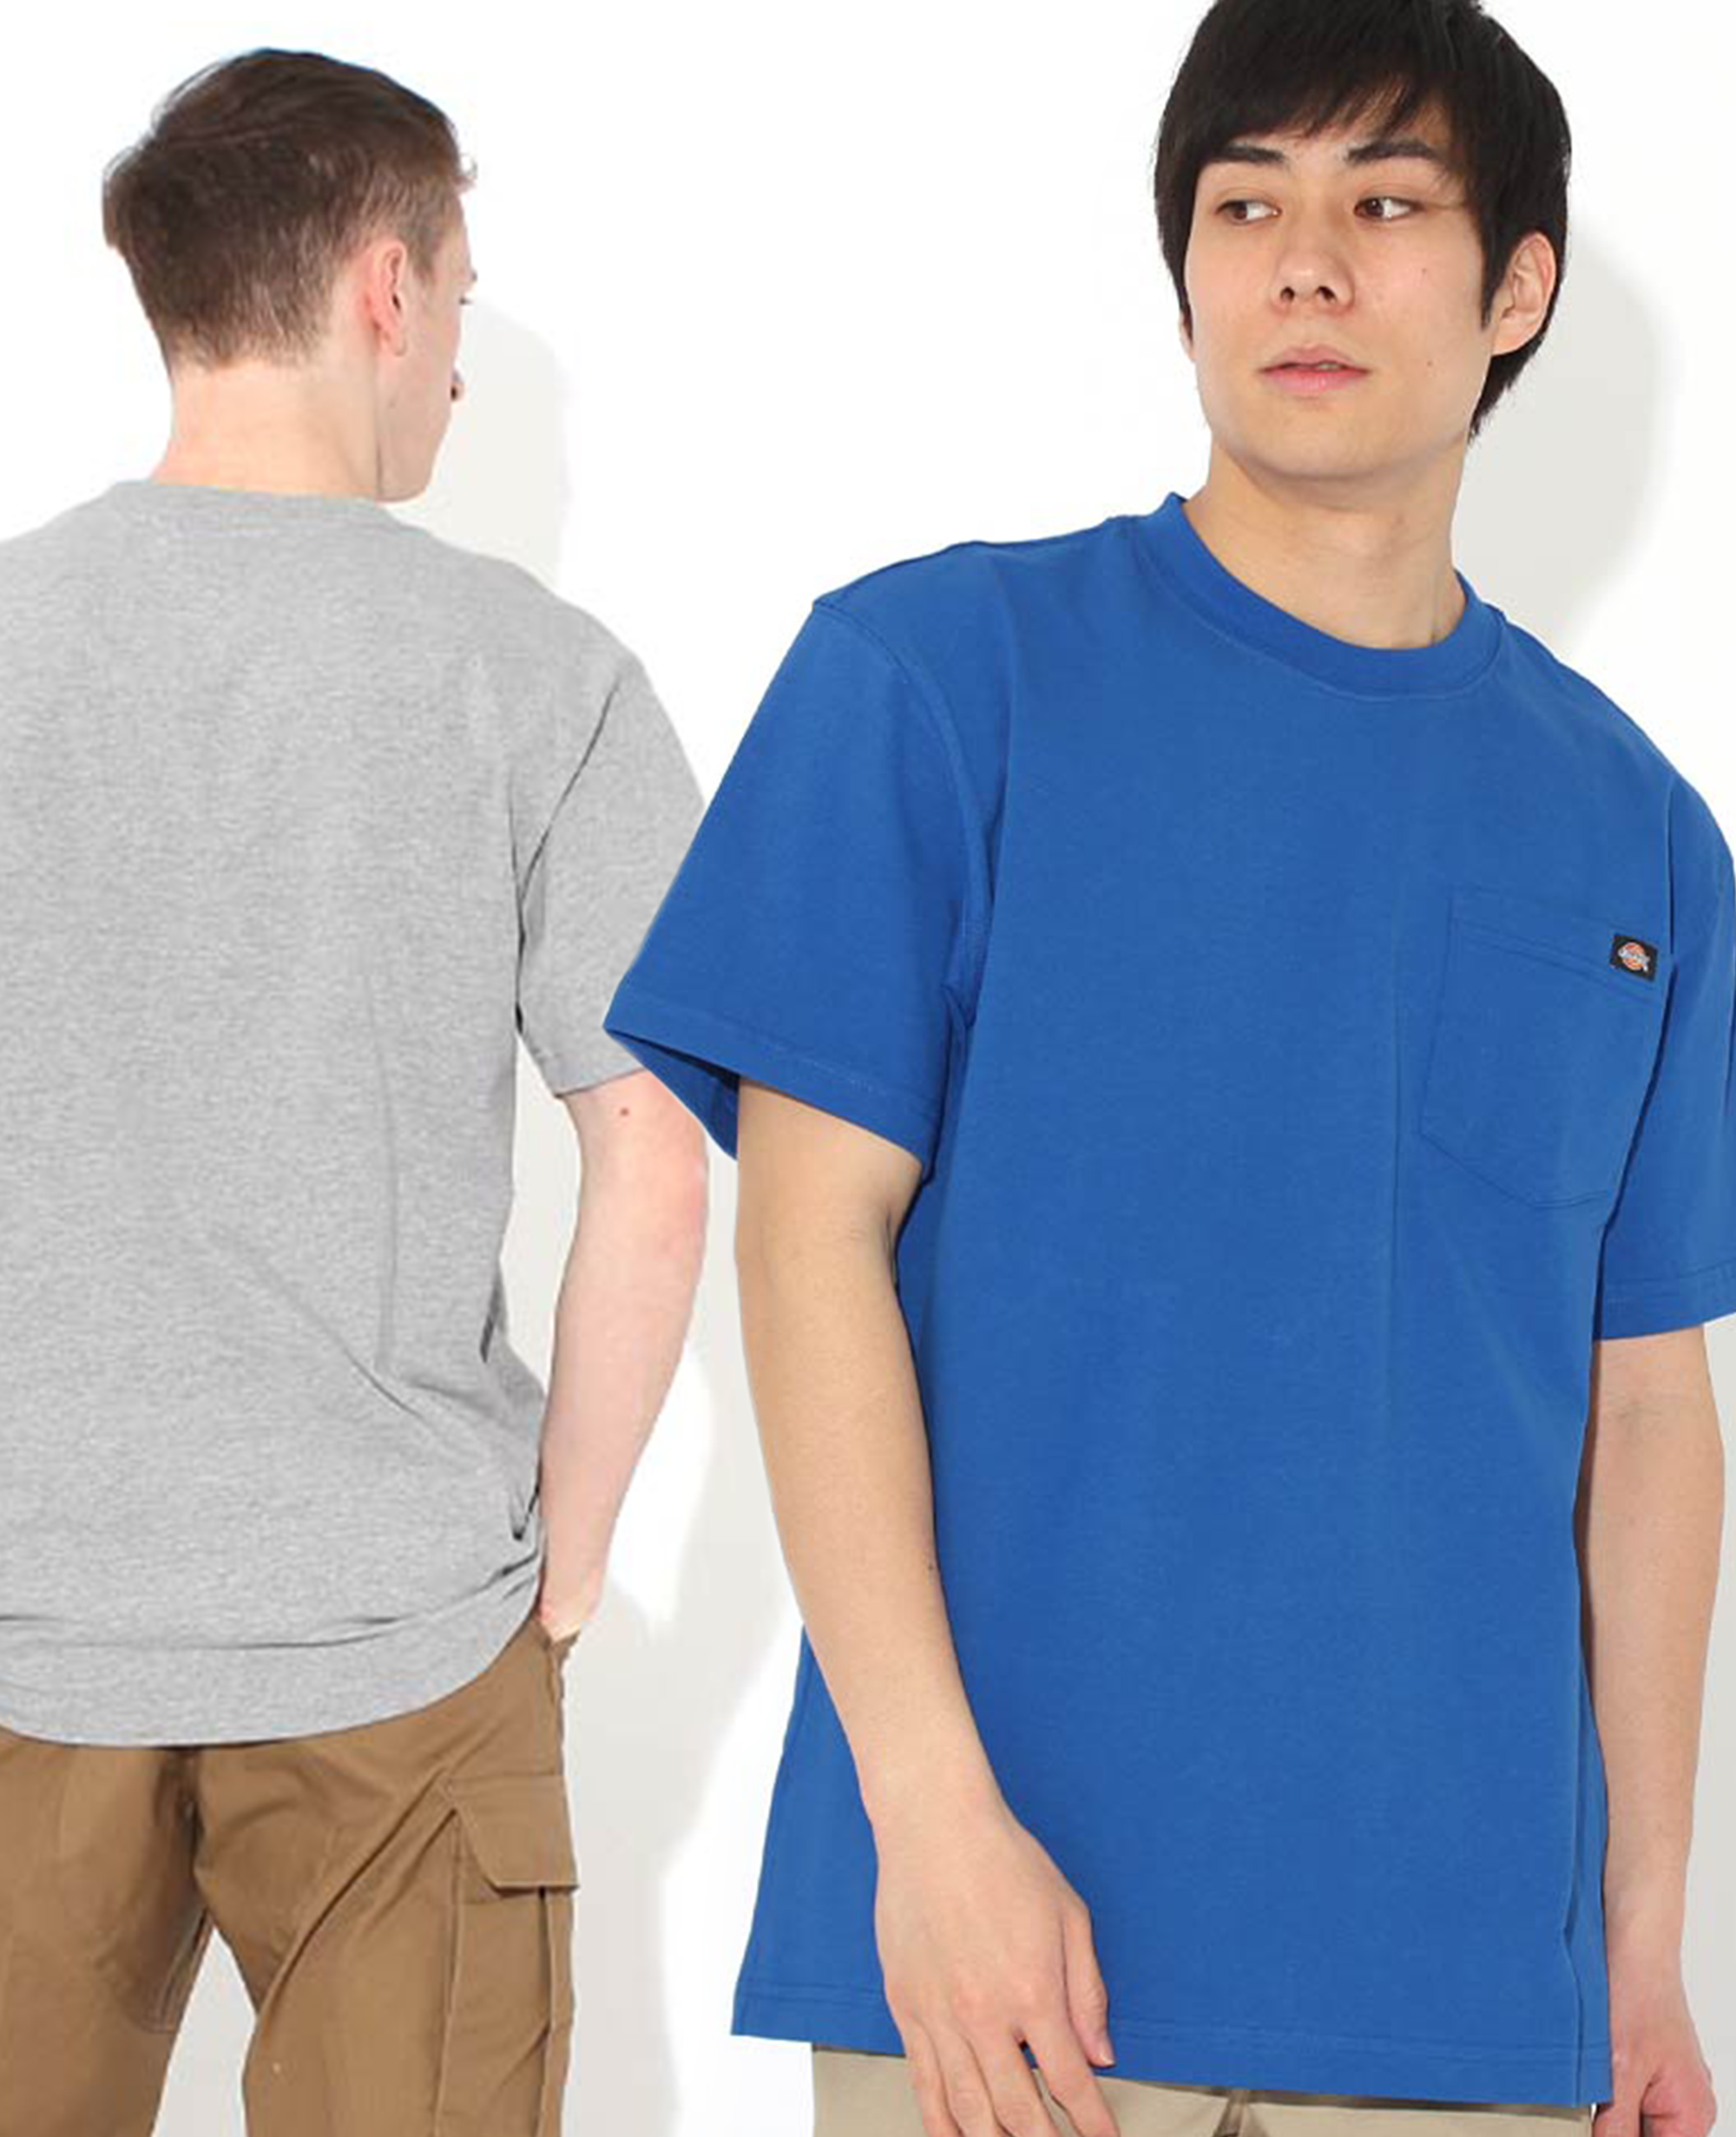 Basic Series Heavyweight Pocket T-shirt - T-Shirts - Dickies - BRANMA